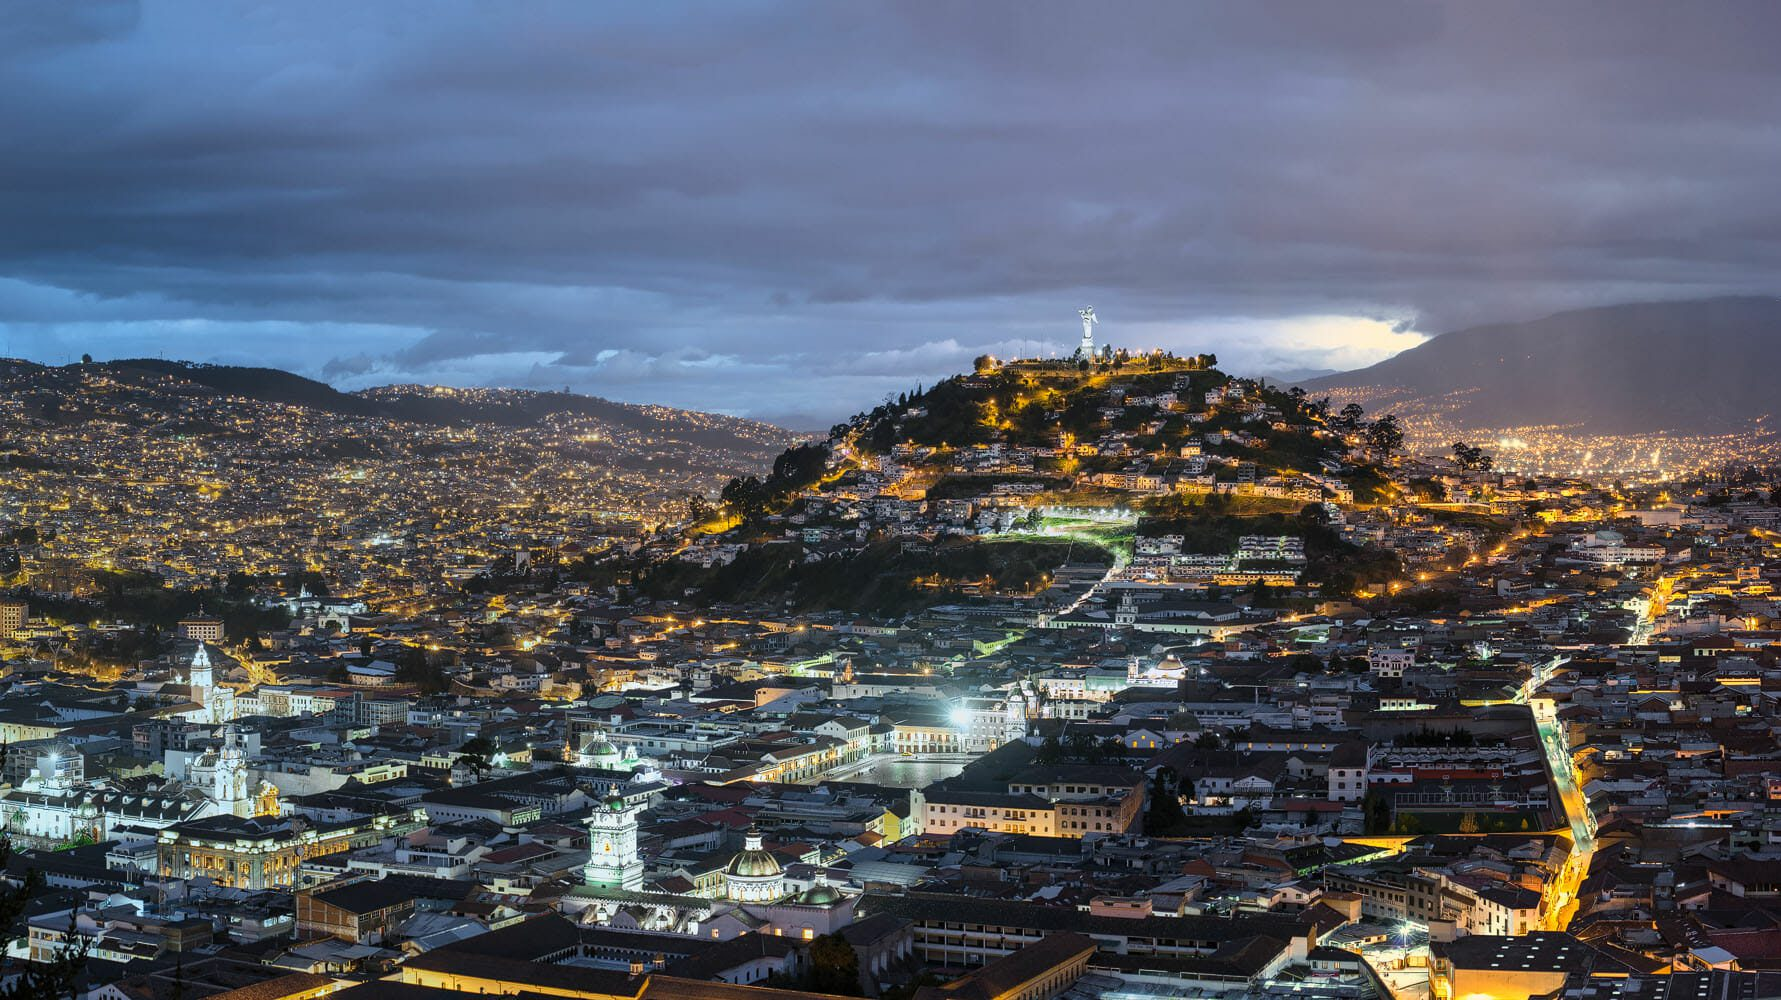 Panorama of the old town of Quito at blue hour dominated by the Panecillo and the Virgen de Quito statue